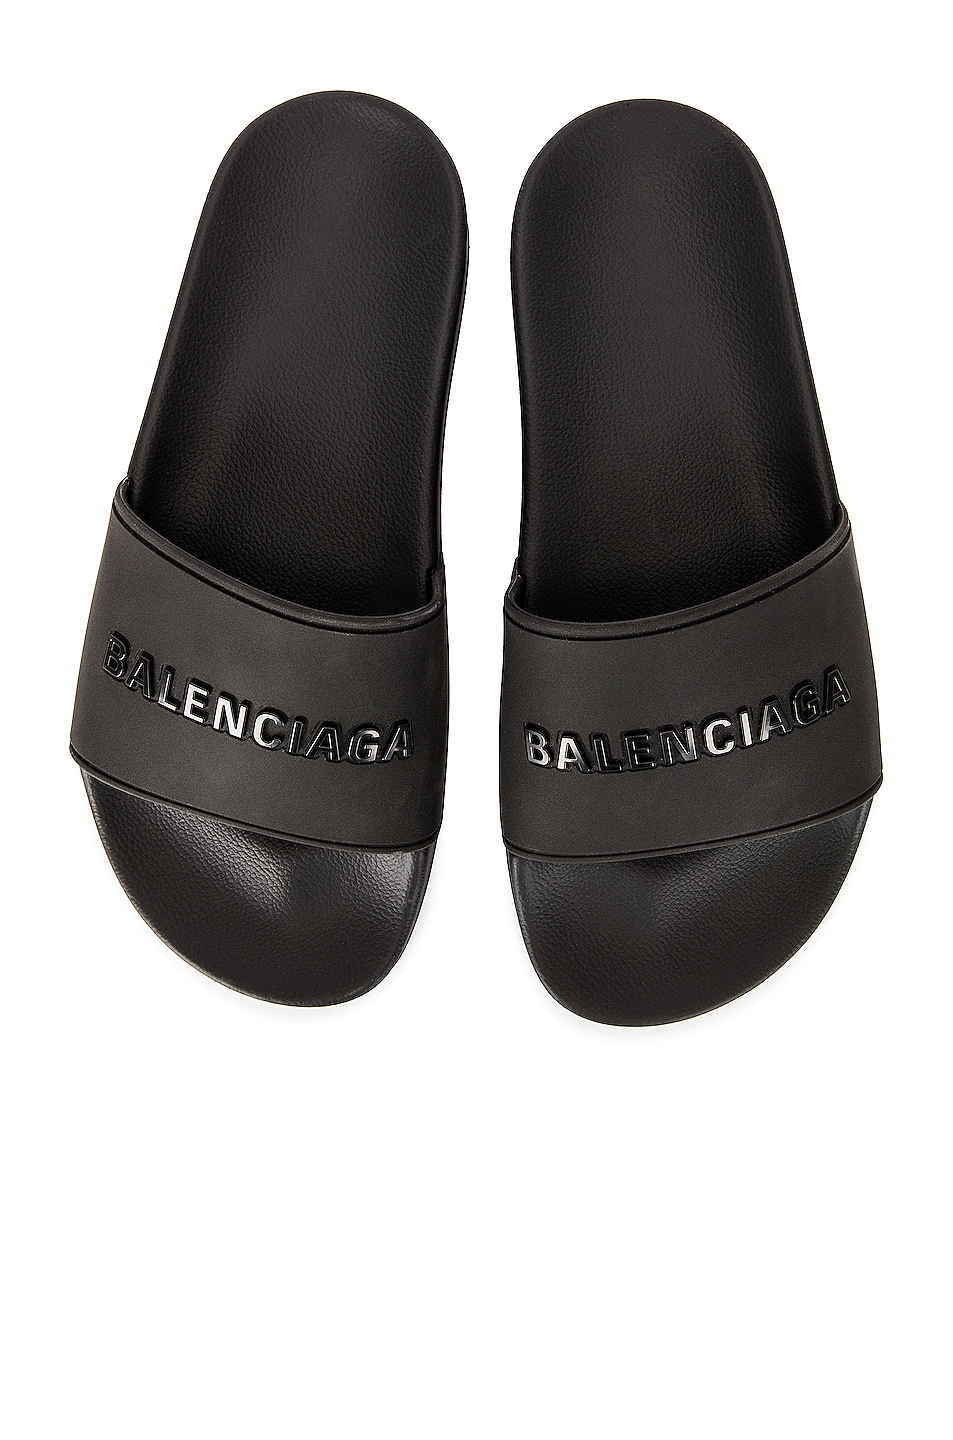 Image 1 of Balenciaga Rubber Logo Pool Slides in Black